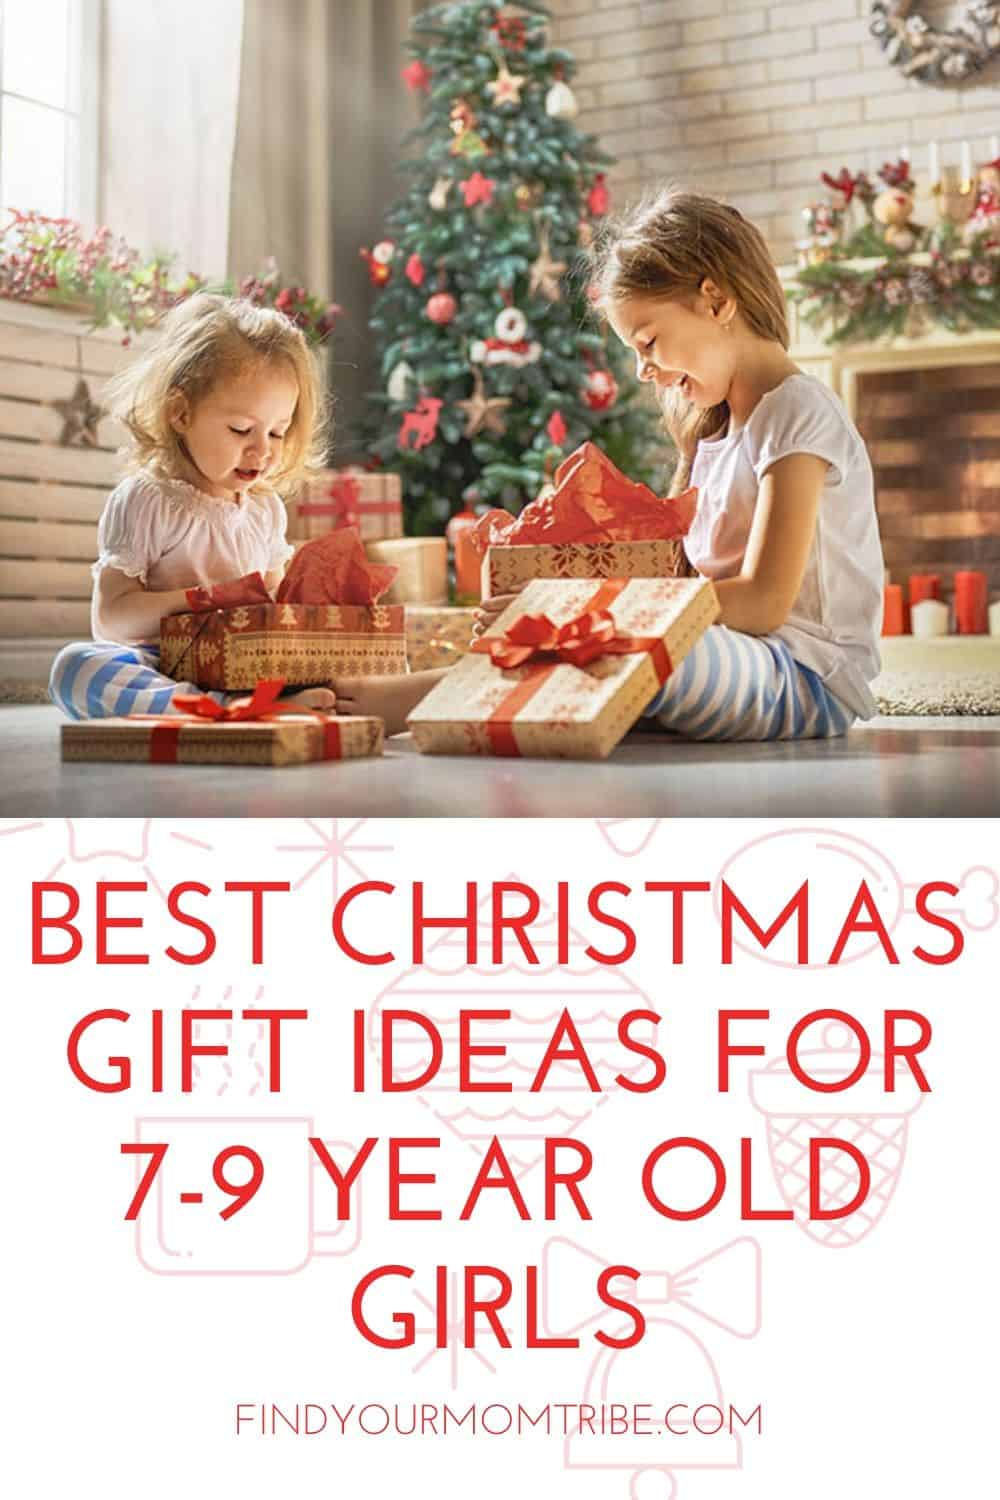 Best Christmas Gift Ideas for 7-9 Year Old Girls